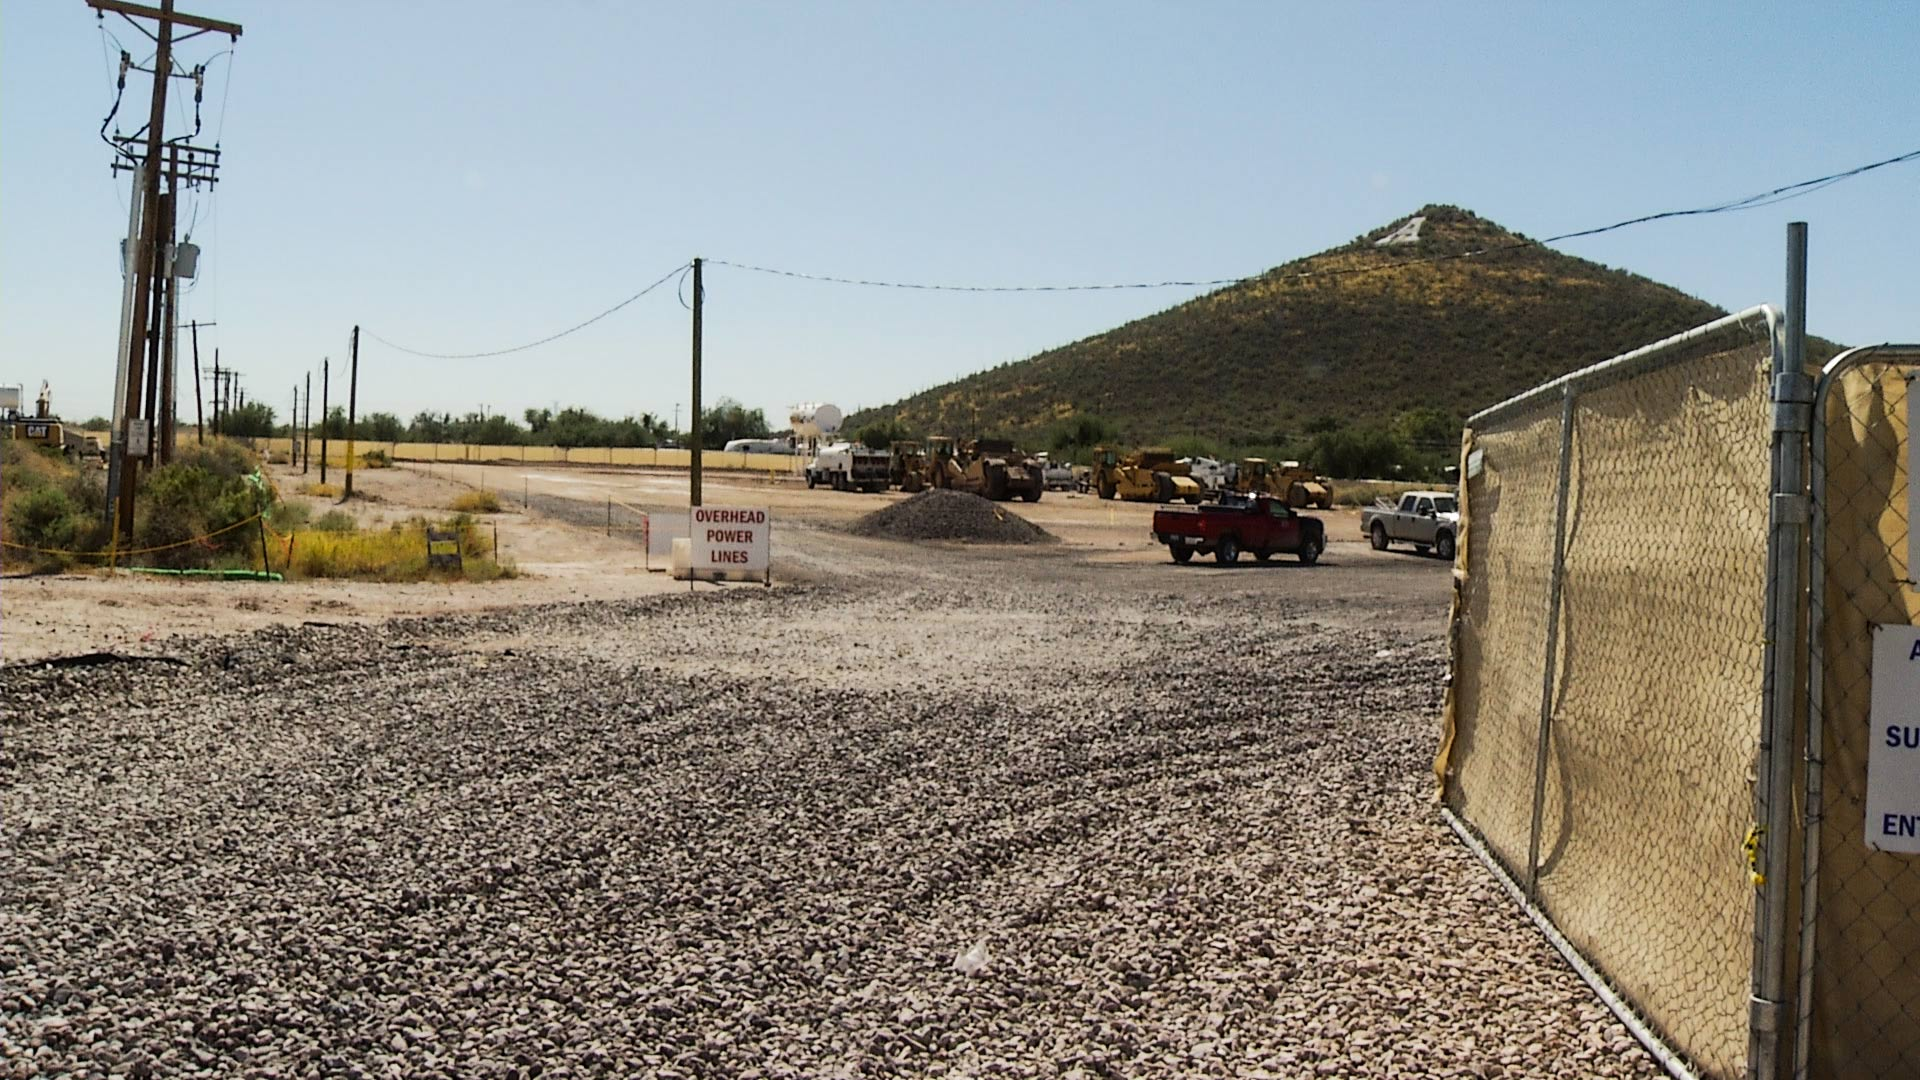 Constructions taking place below Sentinel Peak on Tucson's west side in 2017.